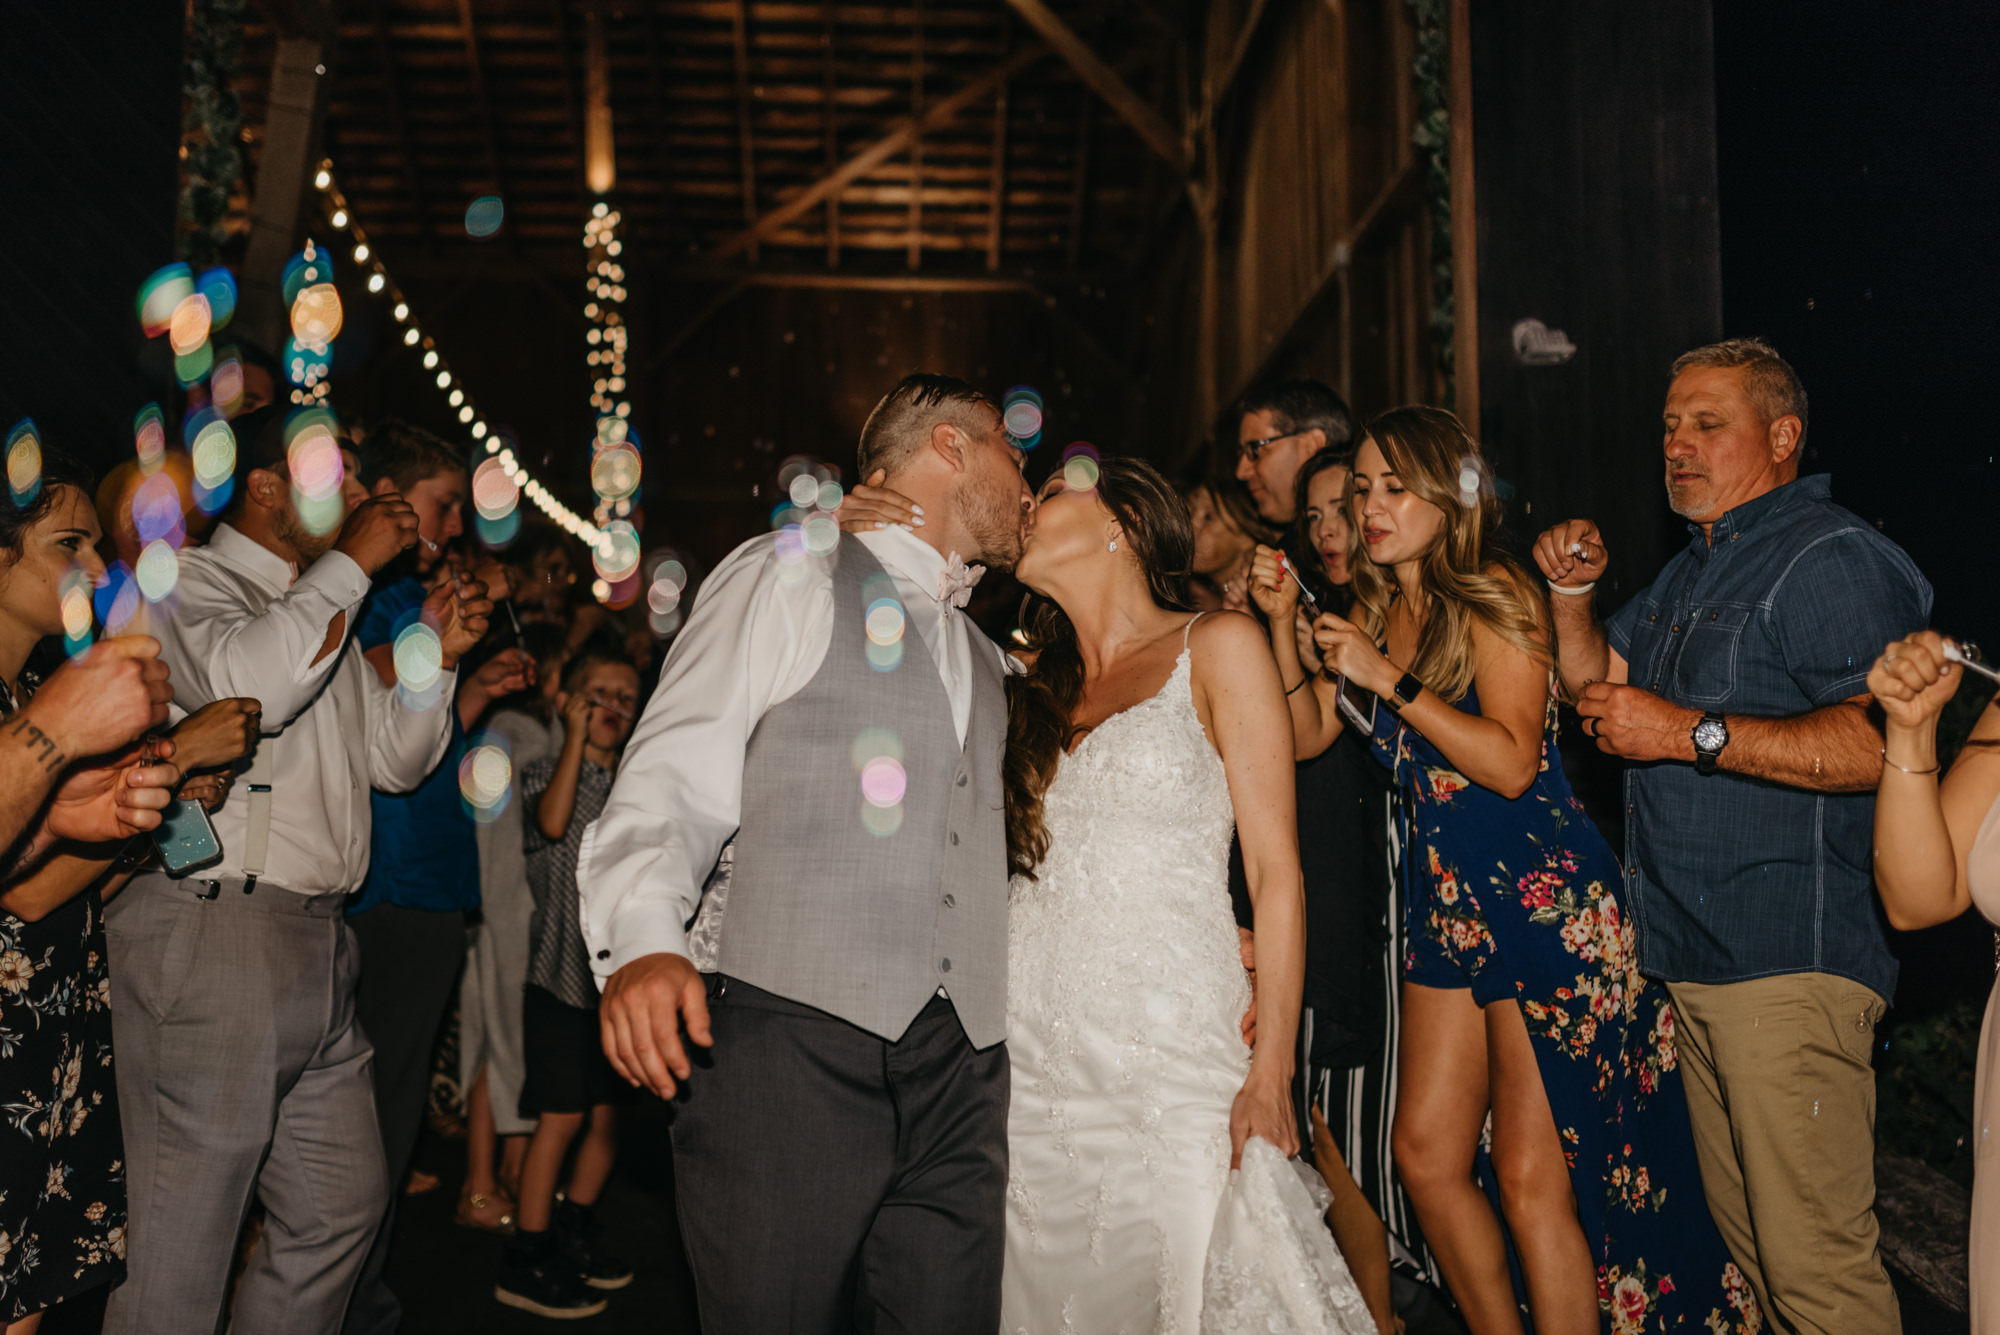 225-portland-northwest-wedding-bubble-exit-barn-string-lights.jpg